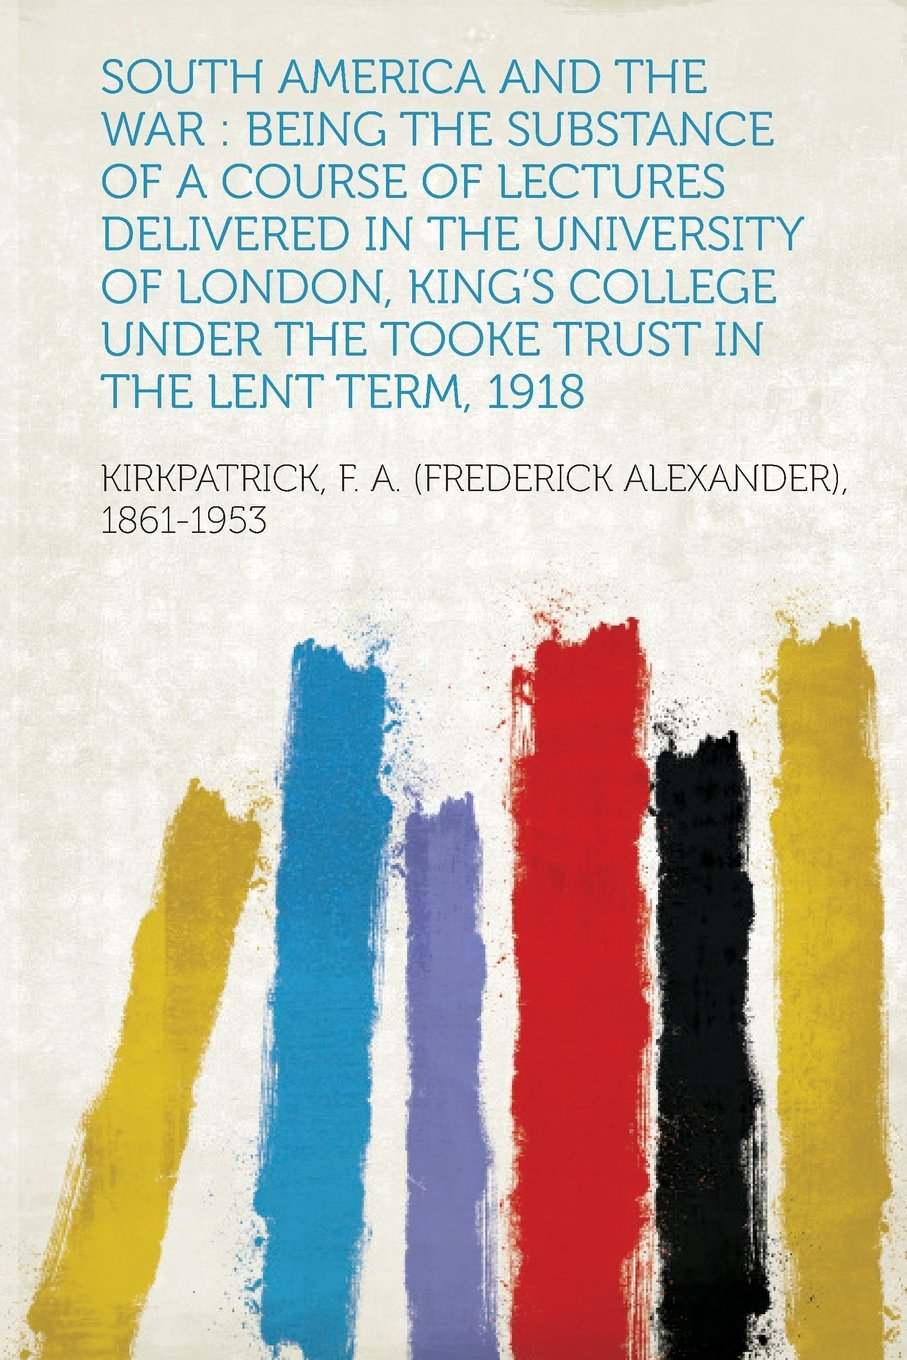 South America and the War: Being the Substance of a Course of Lectures Delivered in the University of London, King's College Under the Tooke Trust in the Lent Term, 1918 pdf epub